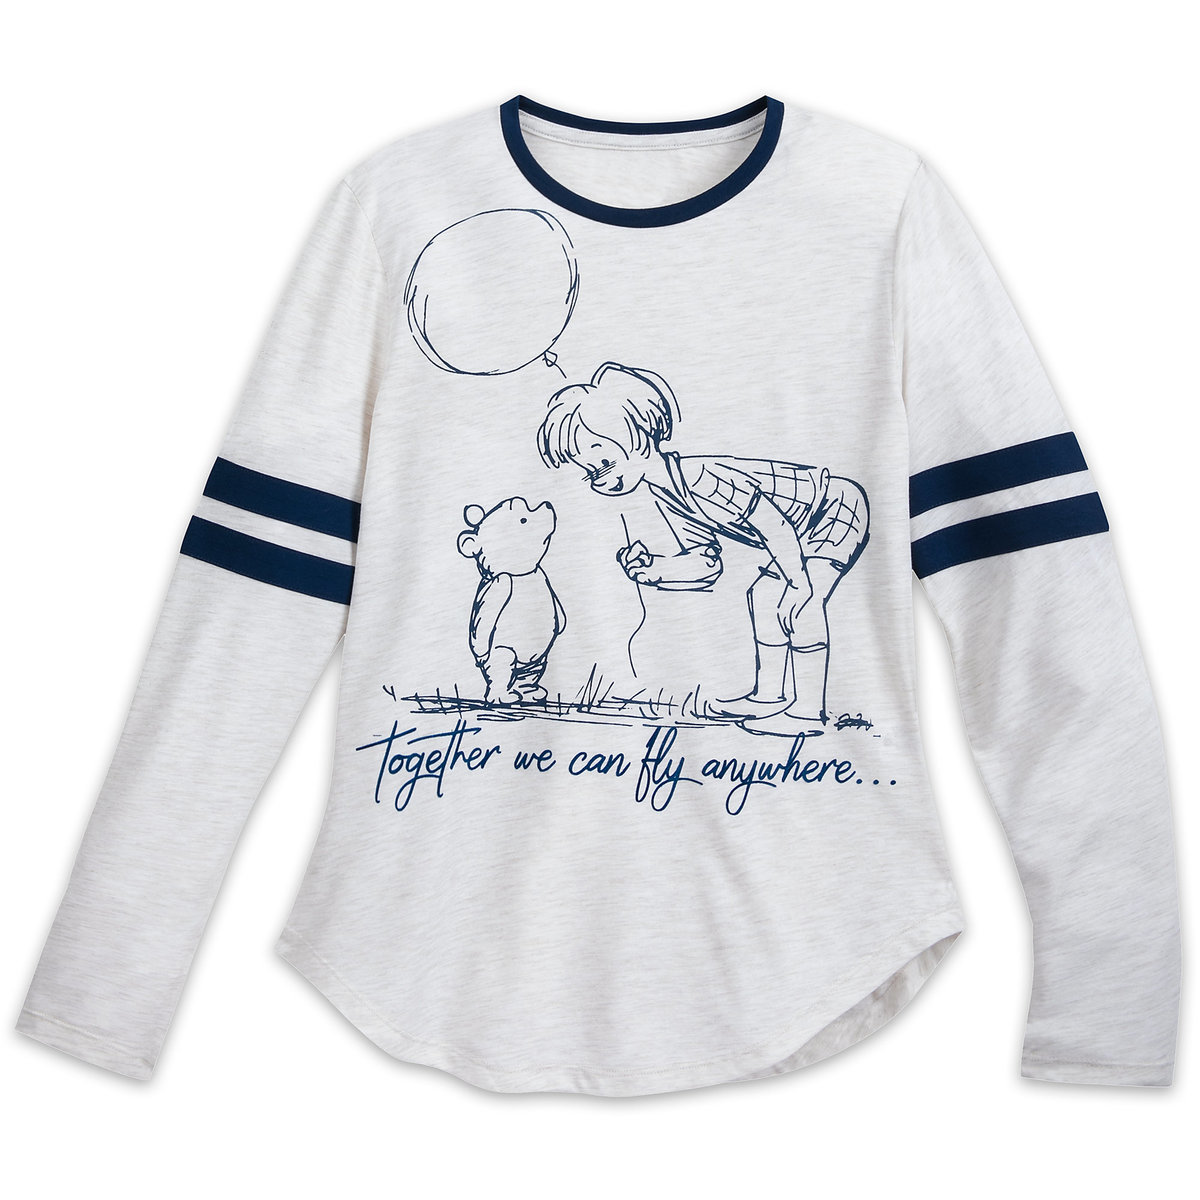 28dcc93be Product Image of Winnie the Pooh and Christopher Robin Long Sleeve Shirt  for Women # 1